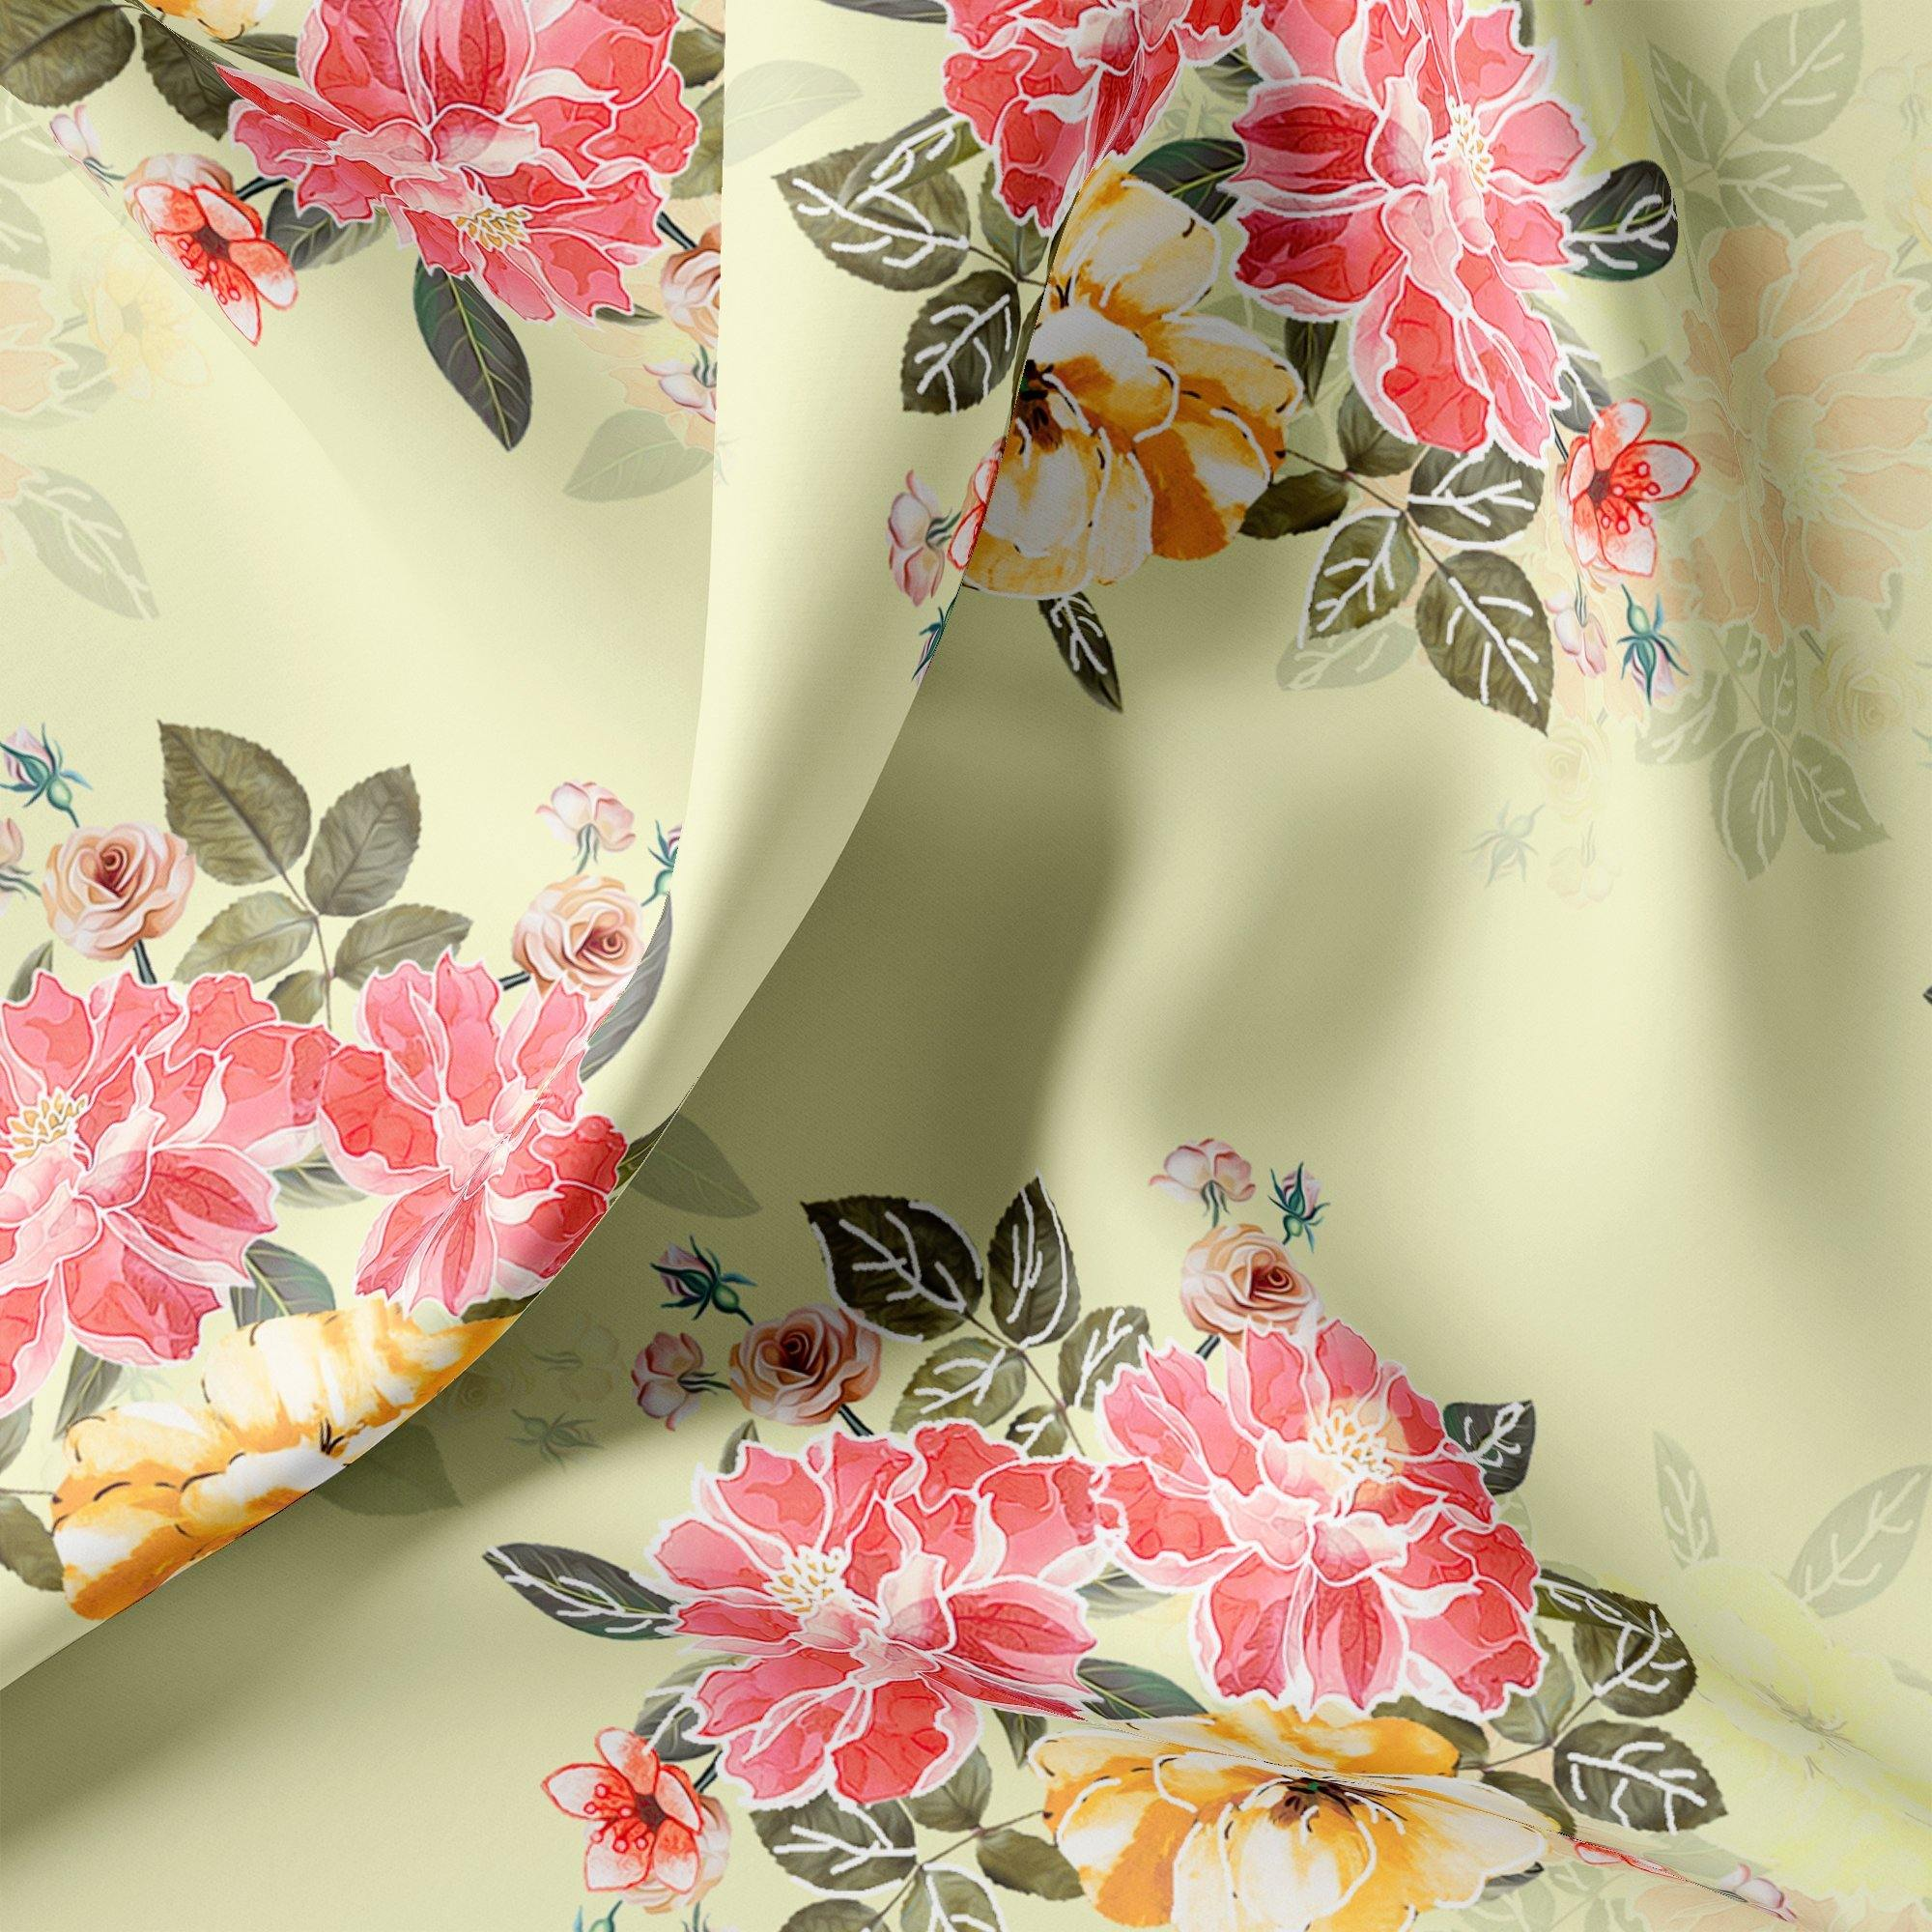 Colorful Floral Yellow Base Digital Printed Fabric - FAB VOGUE Studio